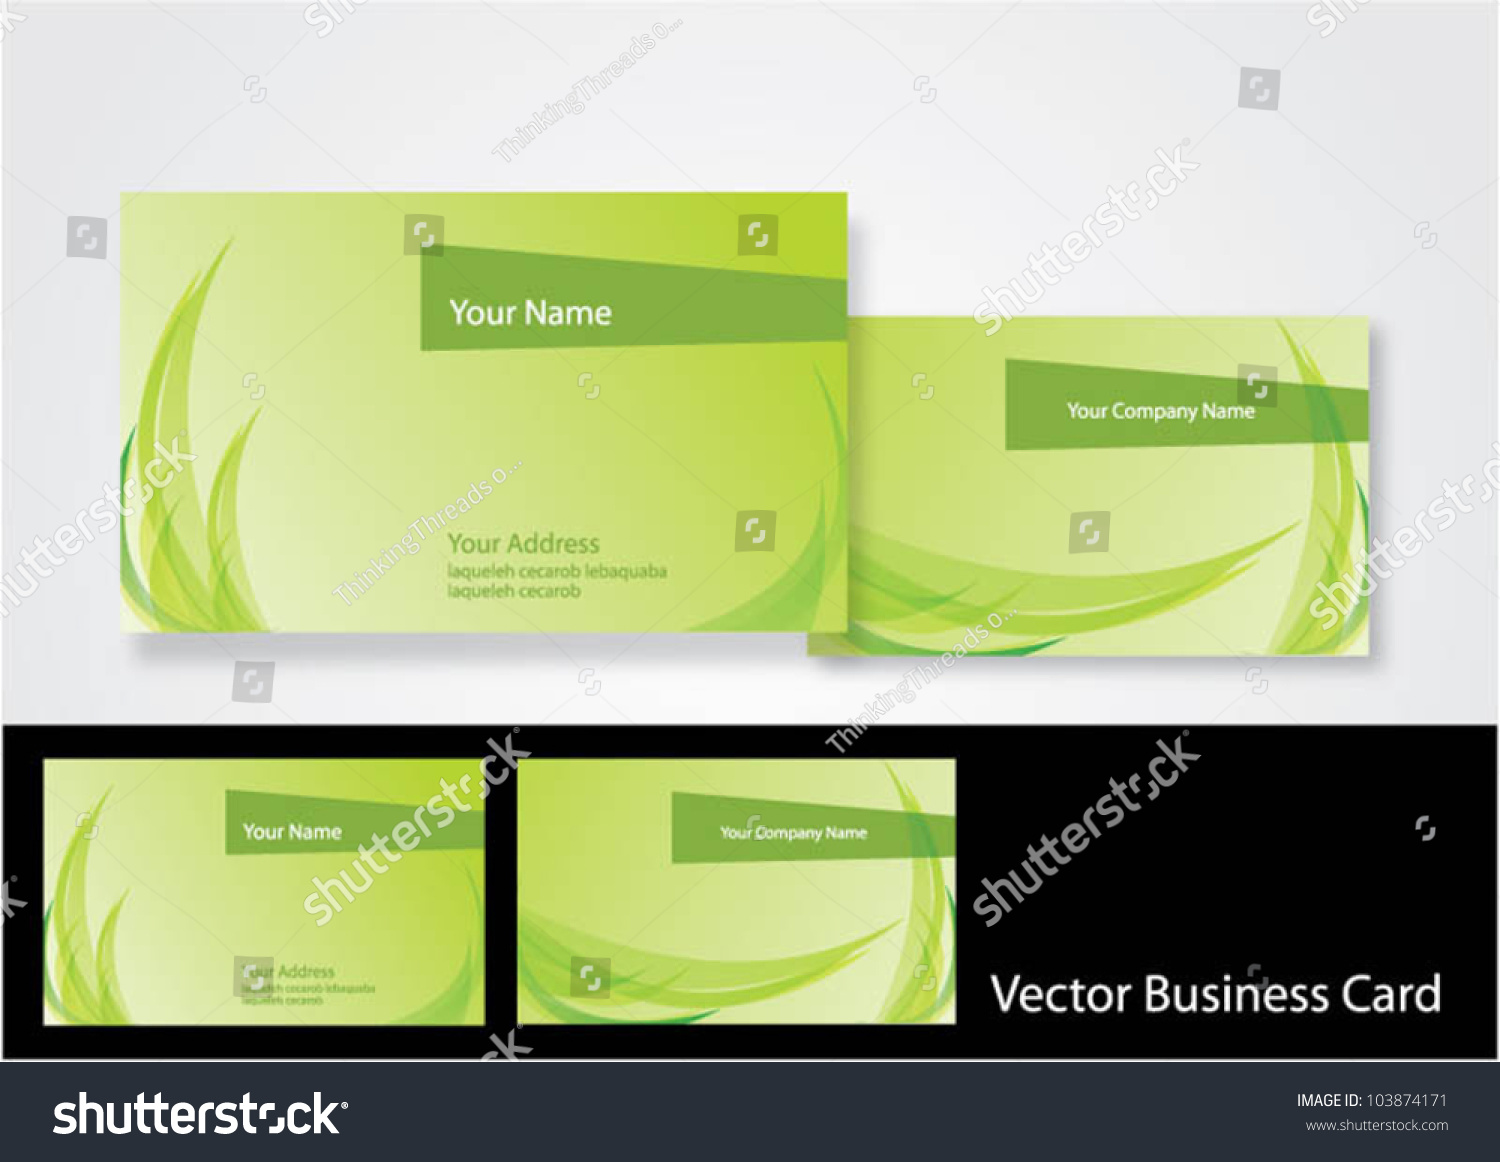 Nature Business Cardvector Illustration Stock Photo (Photo, Vector ...